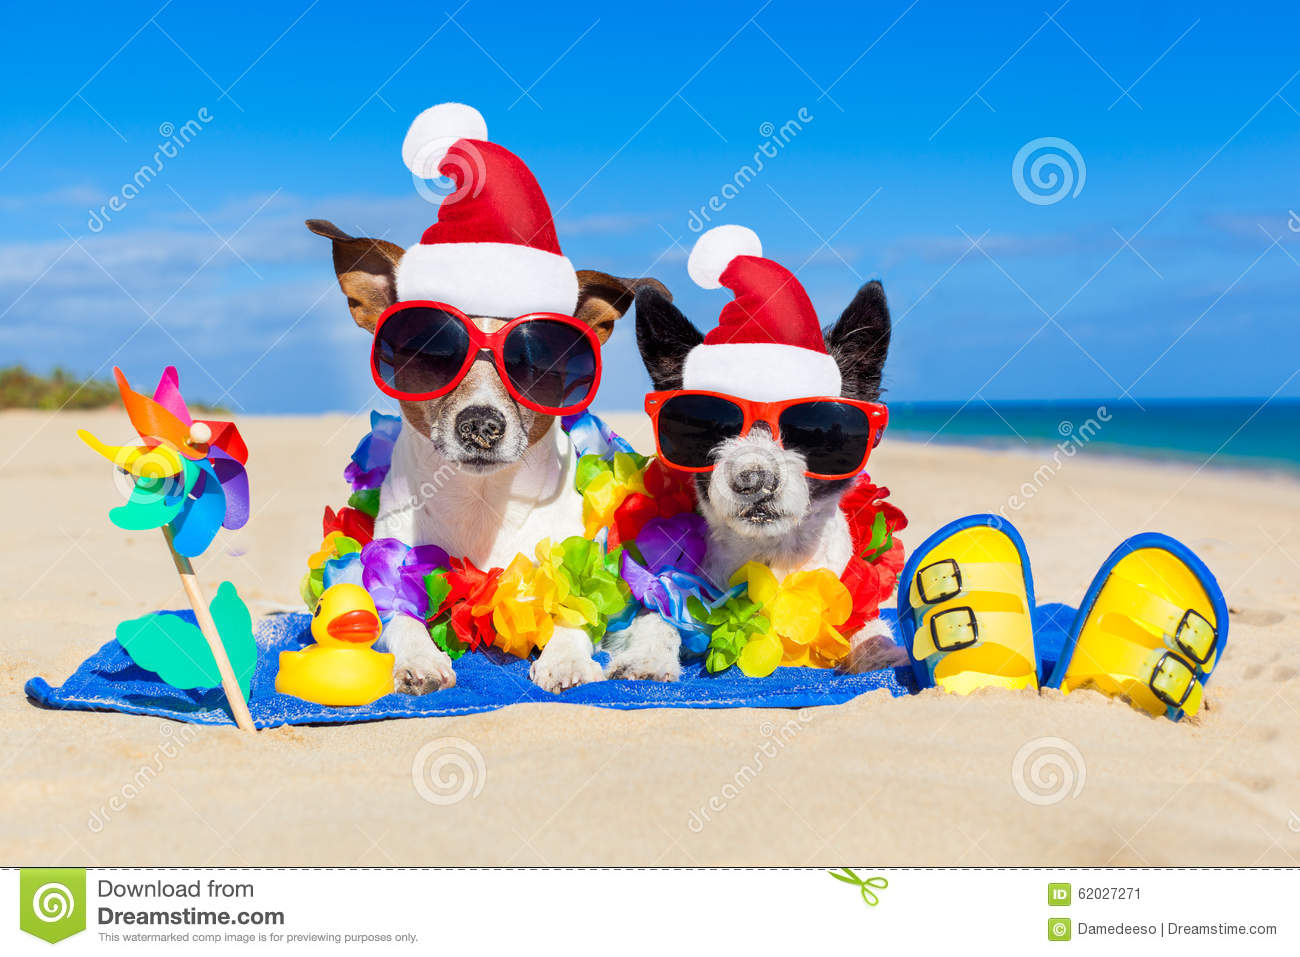 couple of dogs on christmas summer vacation - Summer Christmas